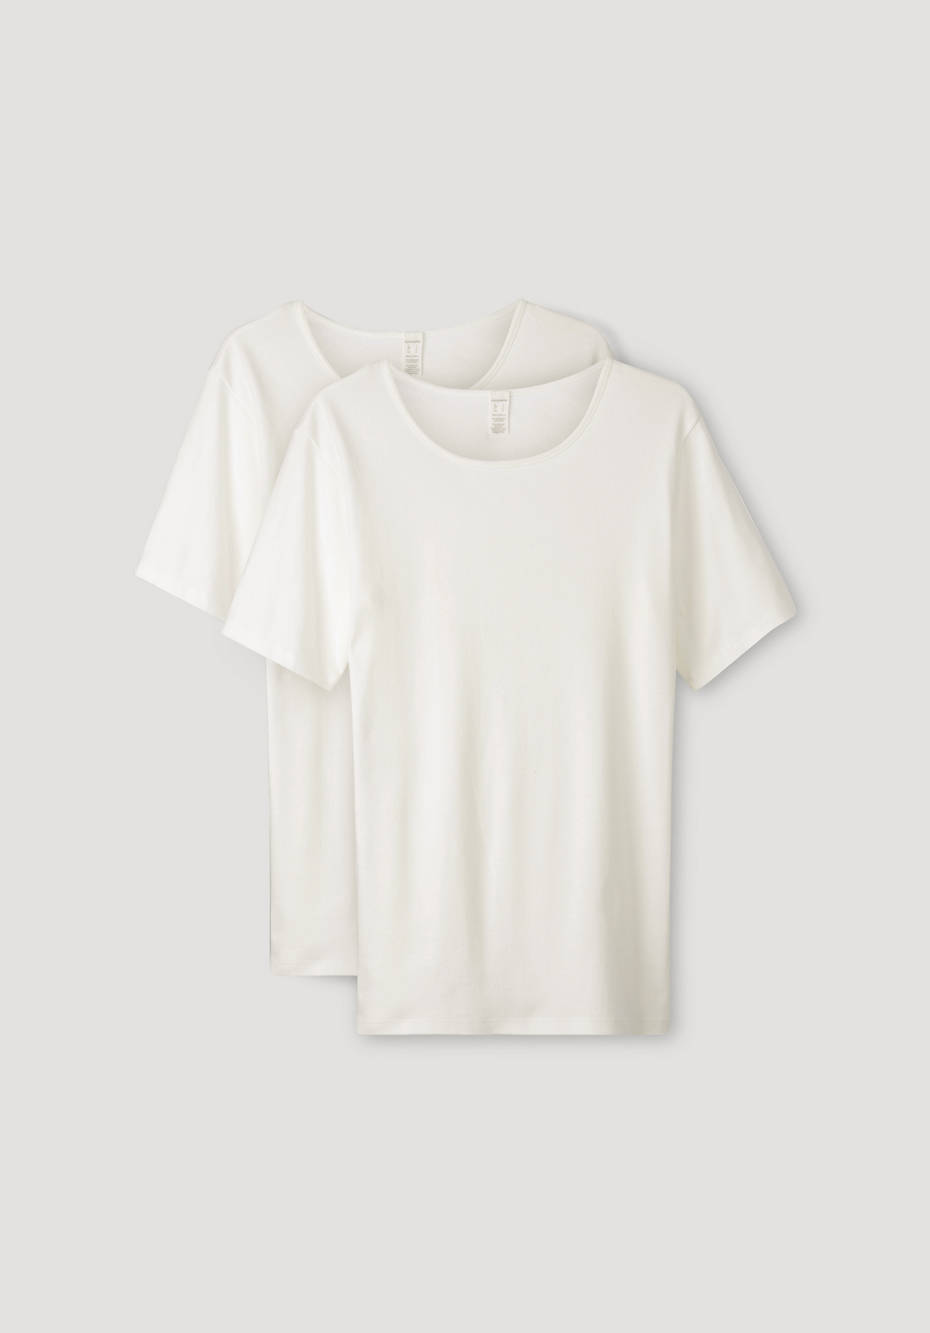 PureDAILY t-shirt in a set of 2 made of pure organic cotton